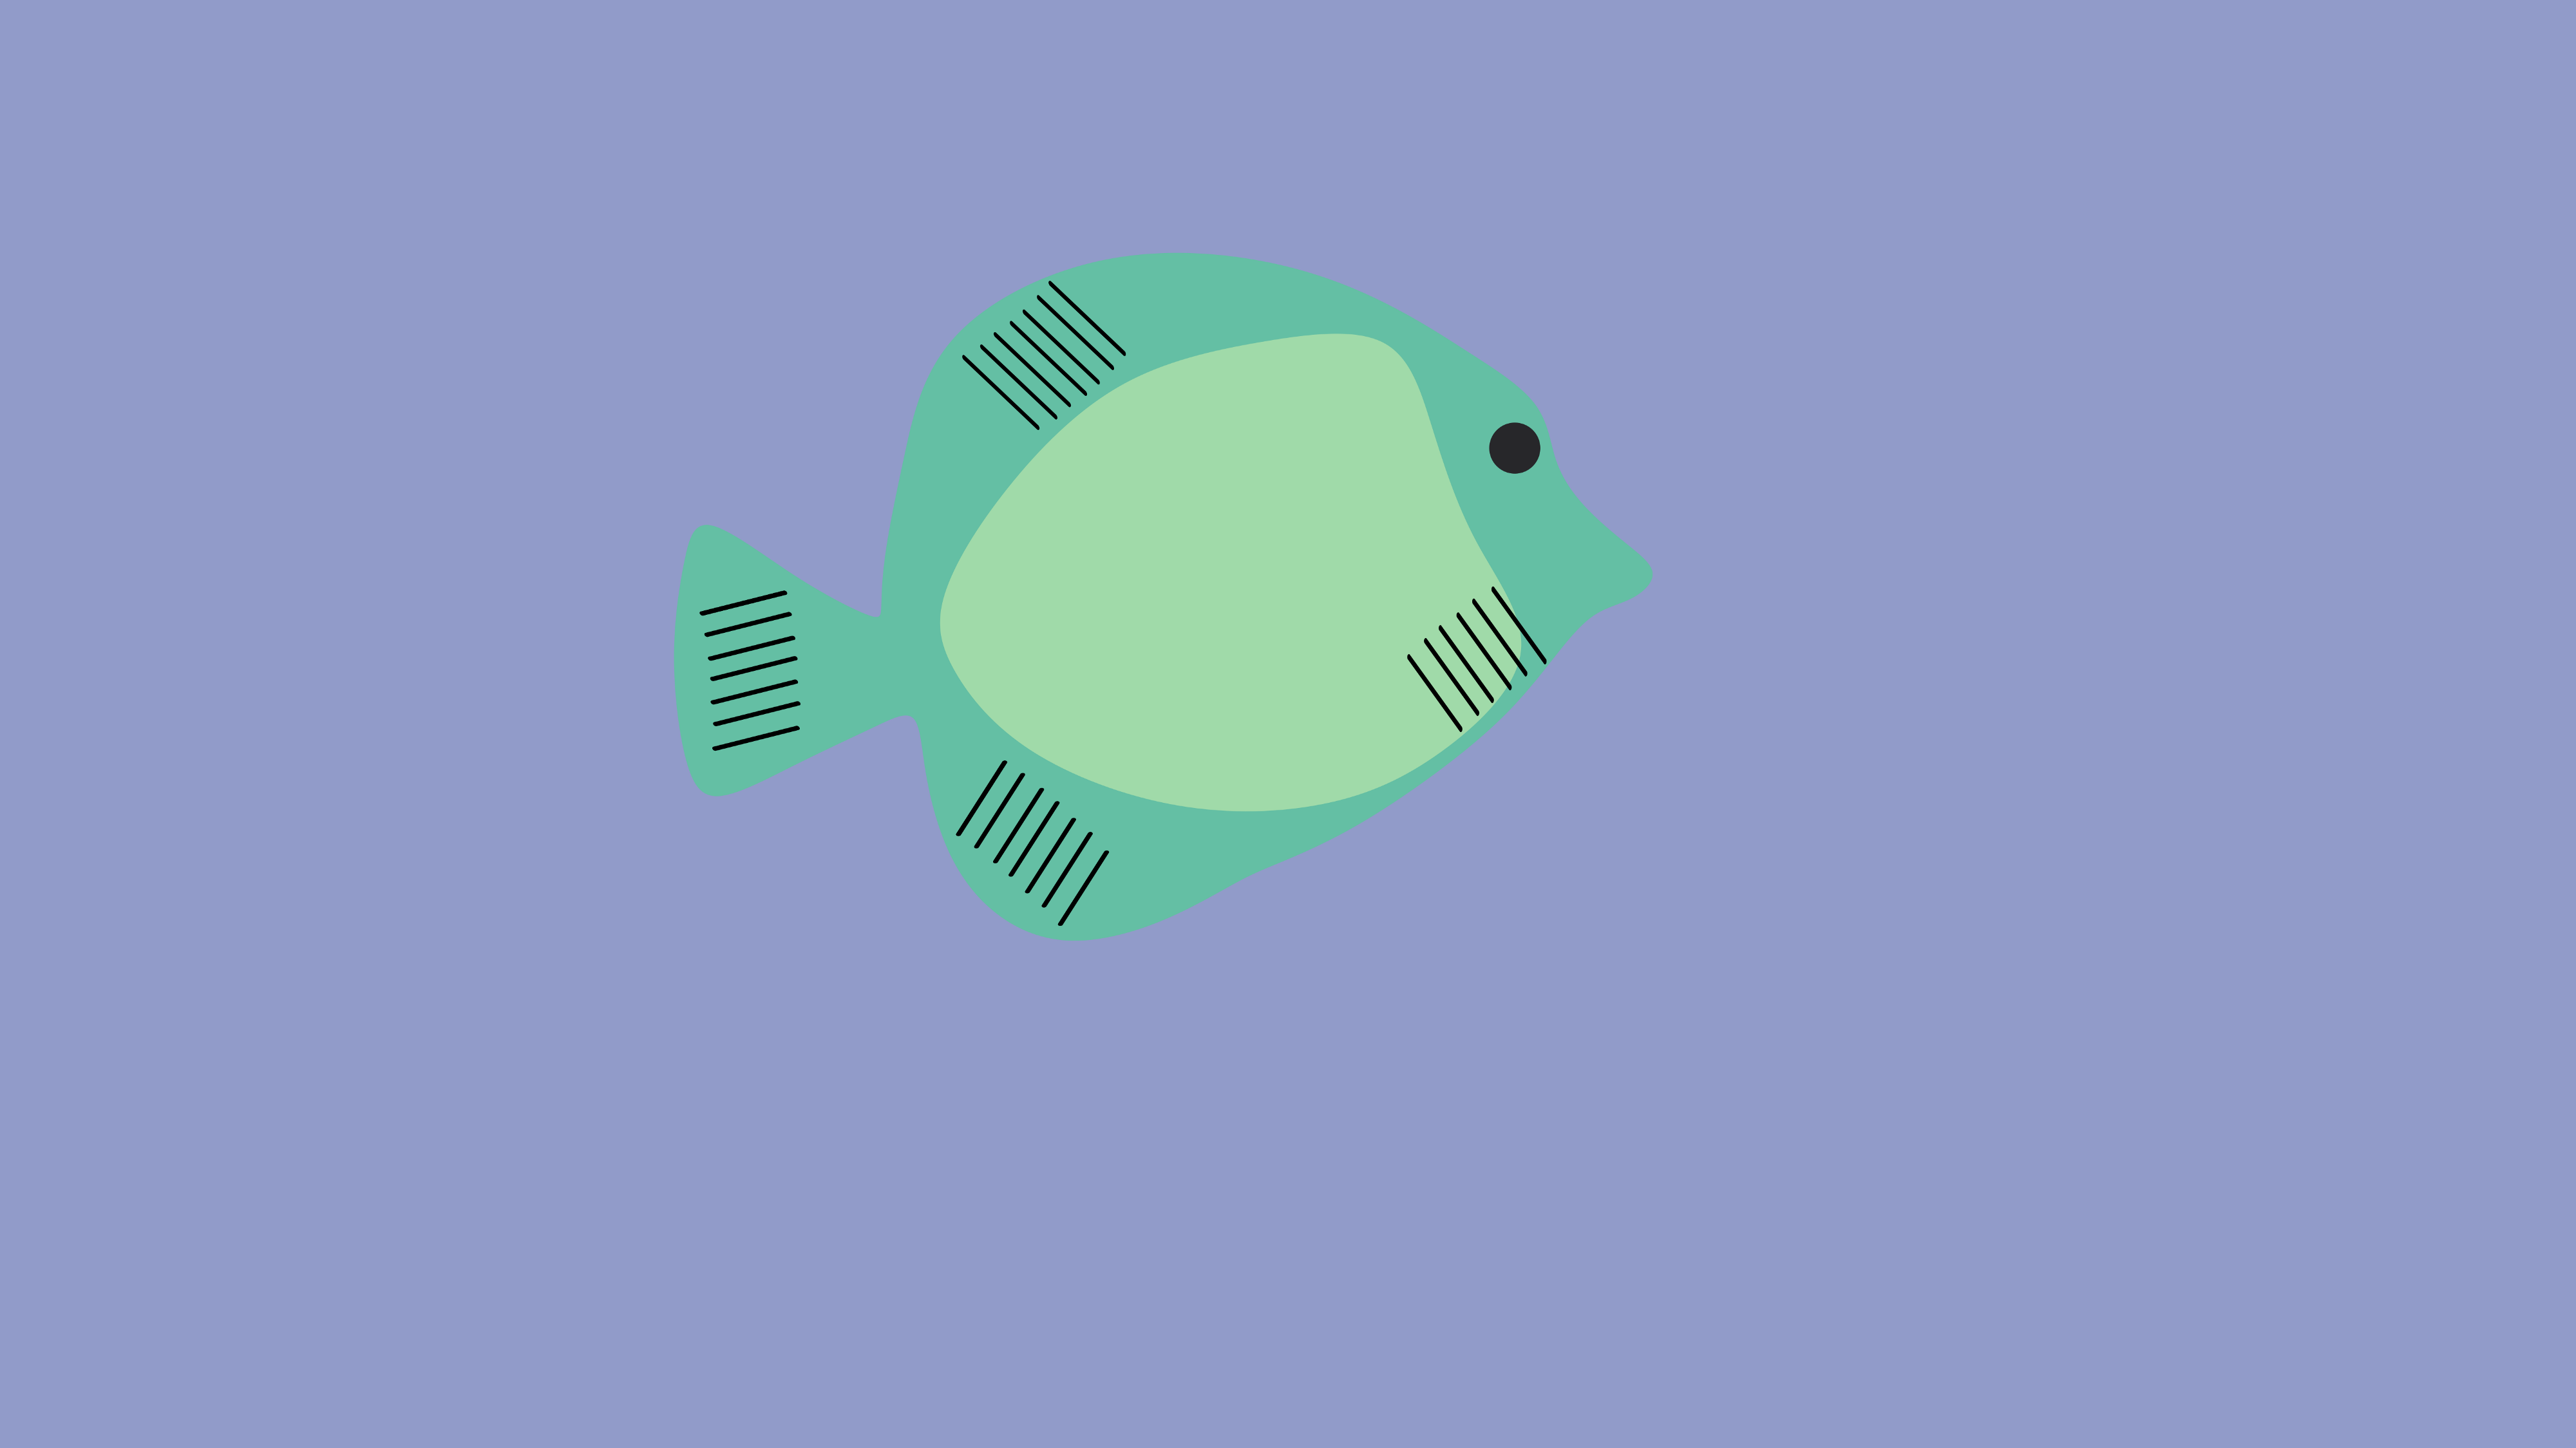 Fish illustration by melissa toldy